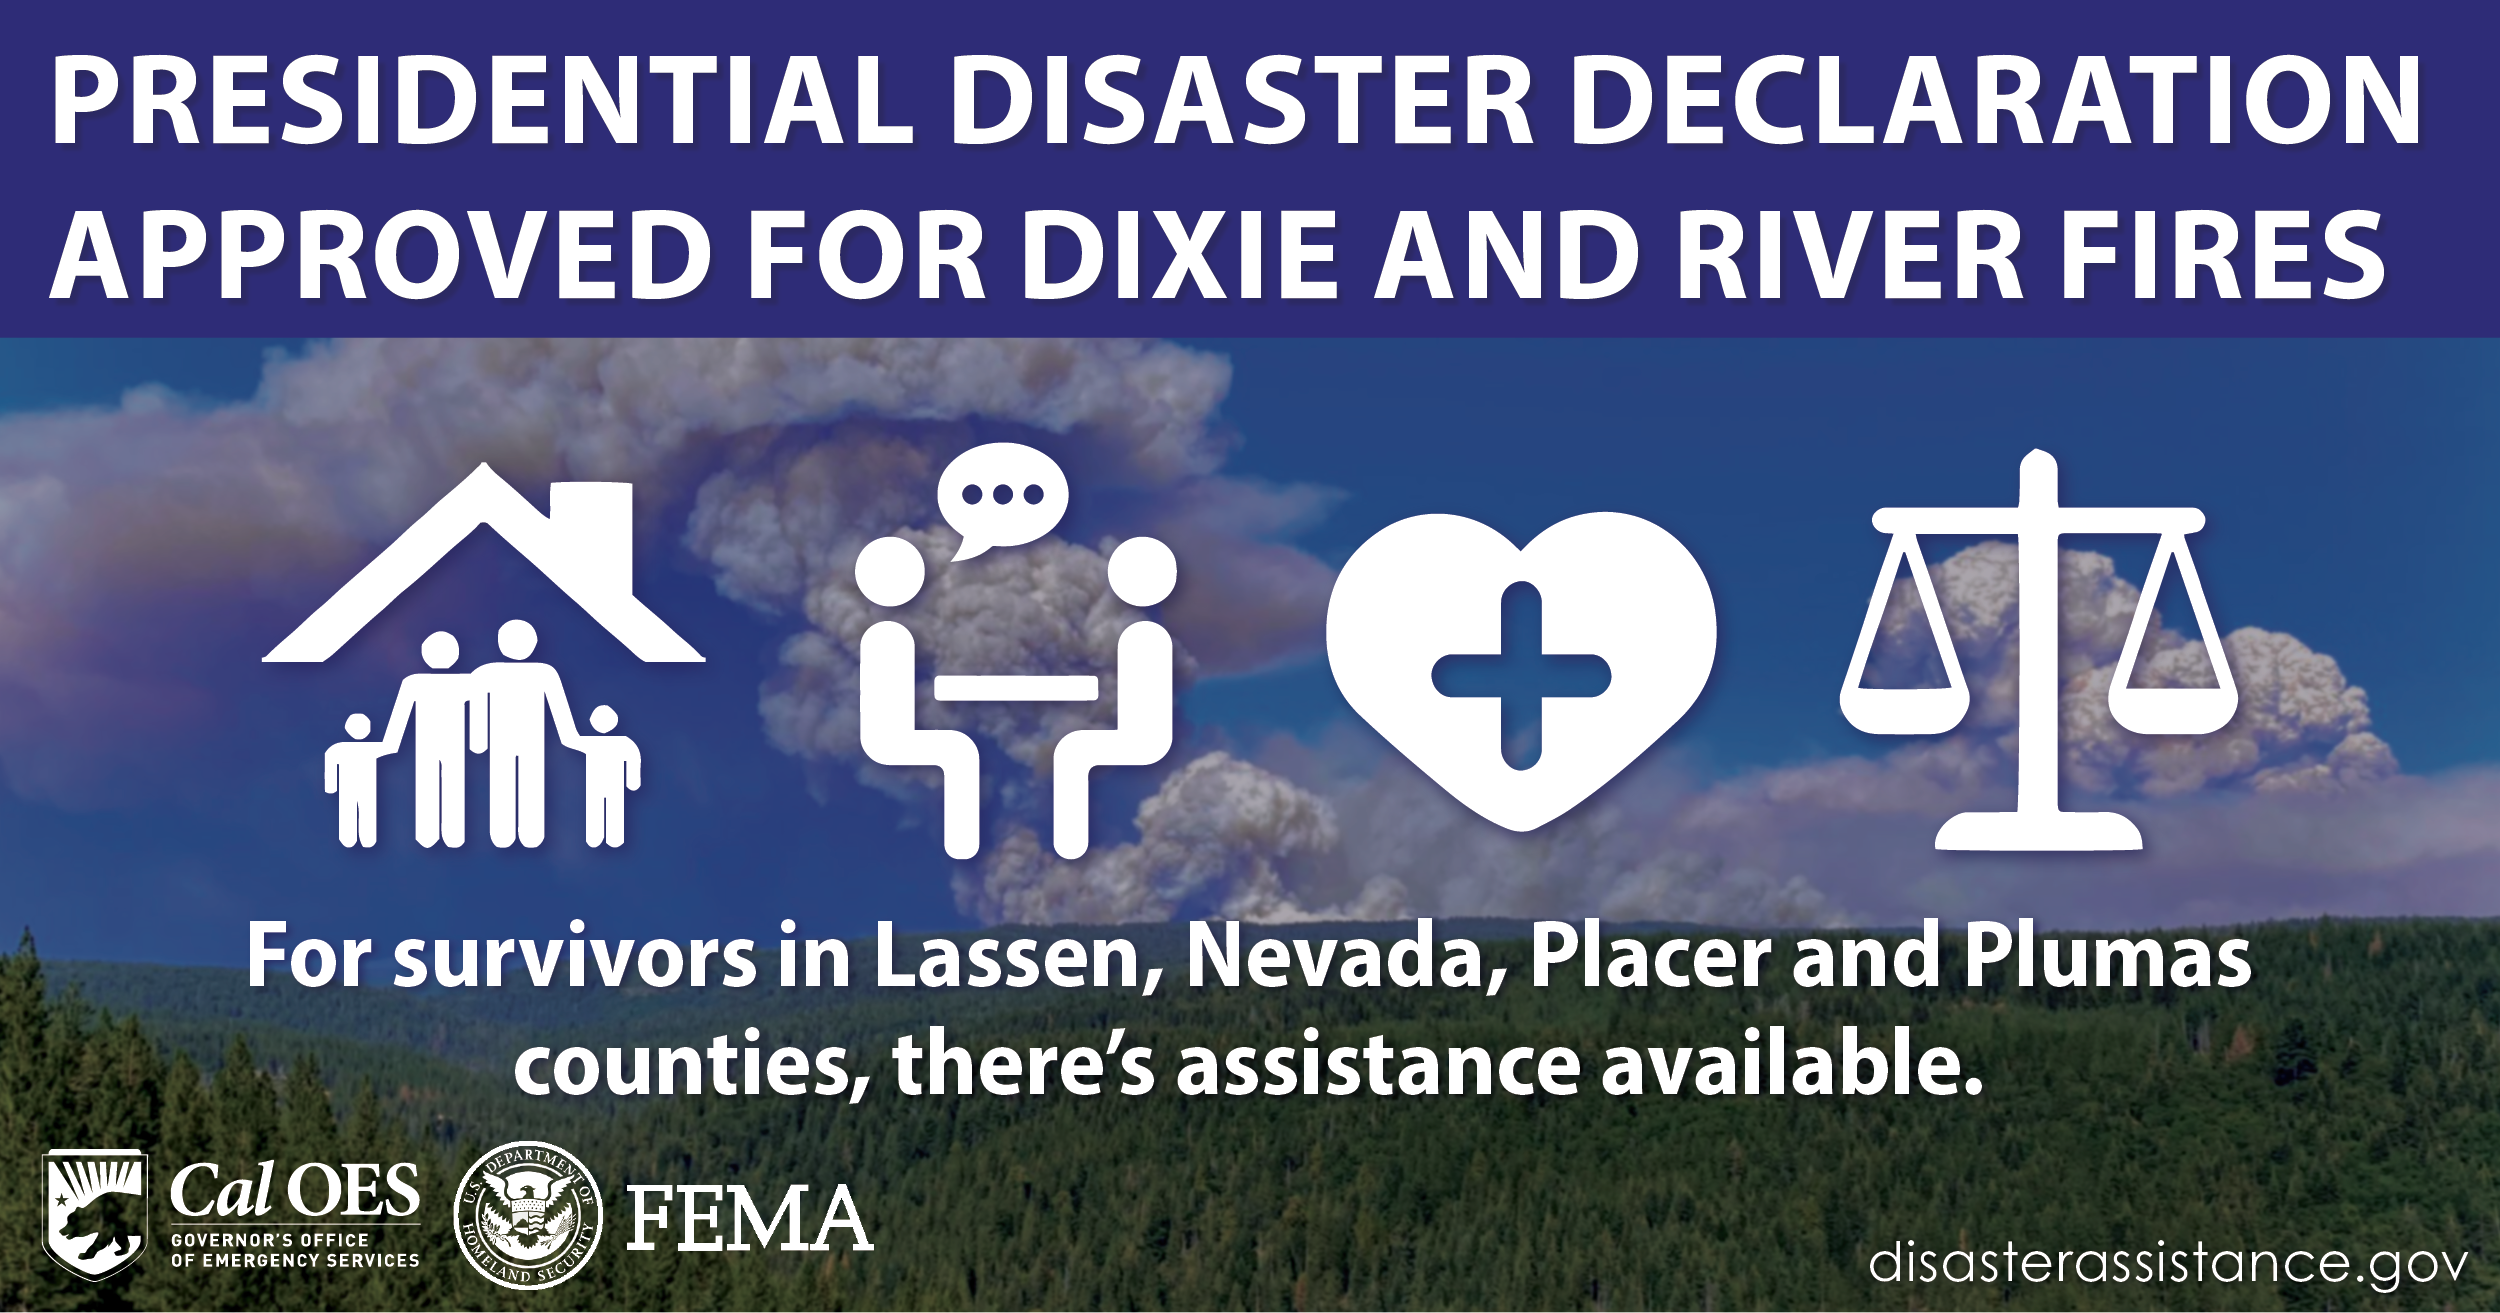 Presidential Disaster Declaration Approved for Dixie and River Fires